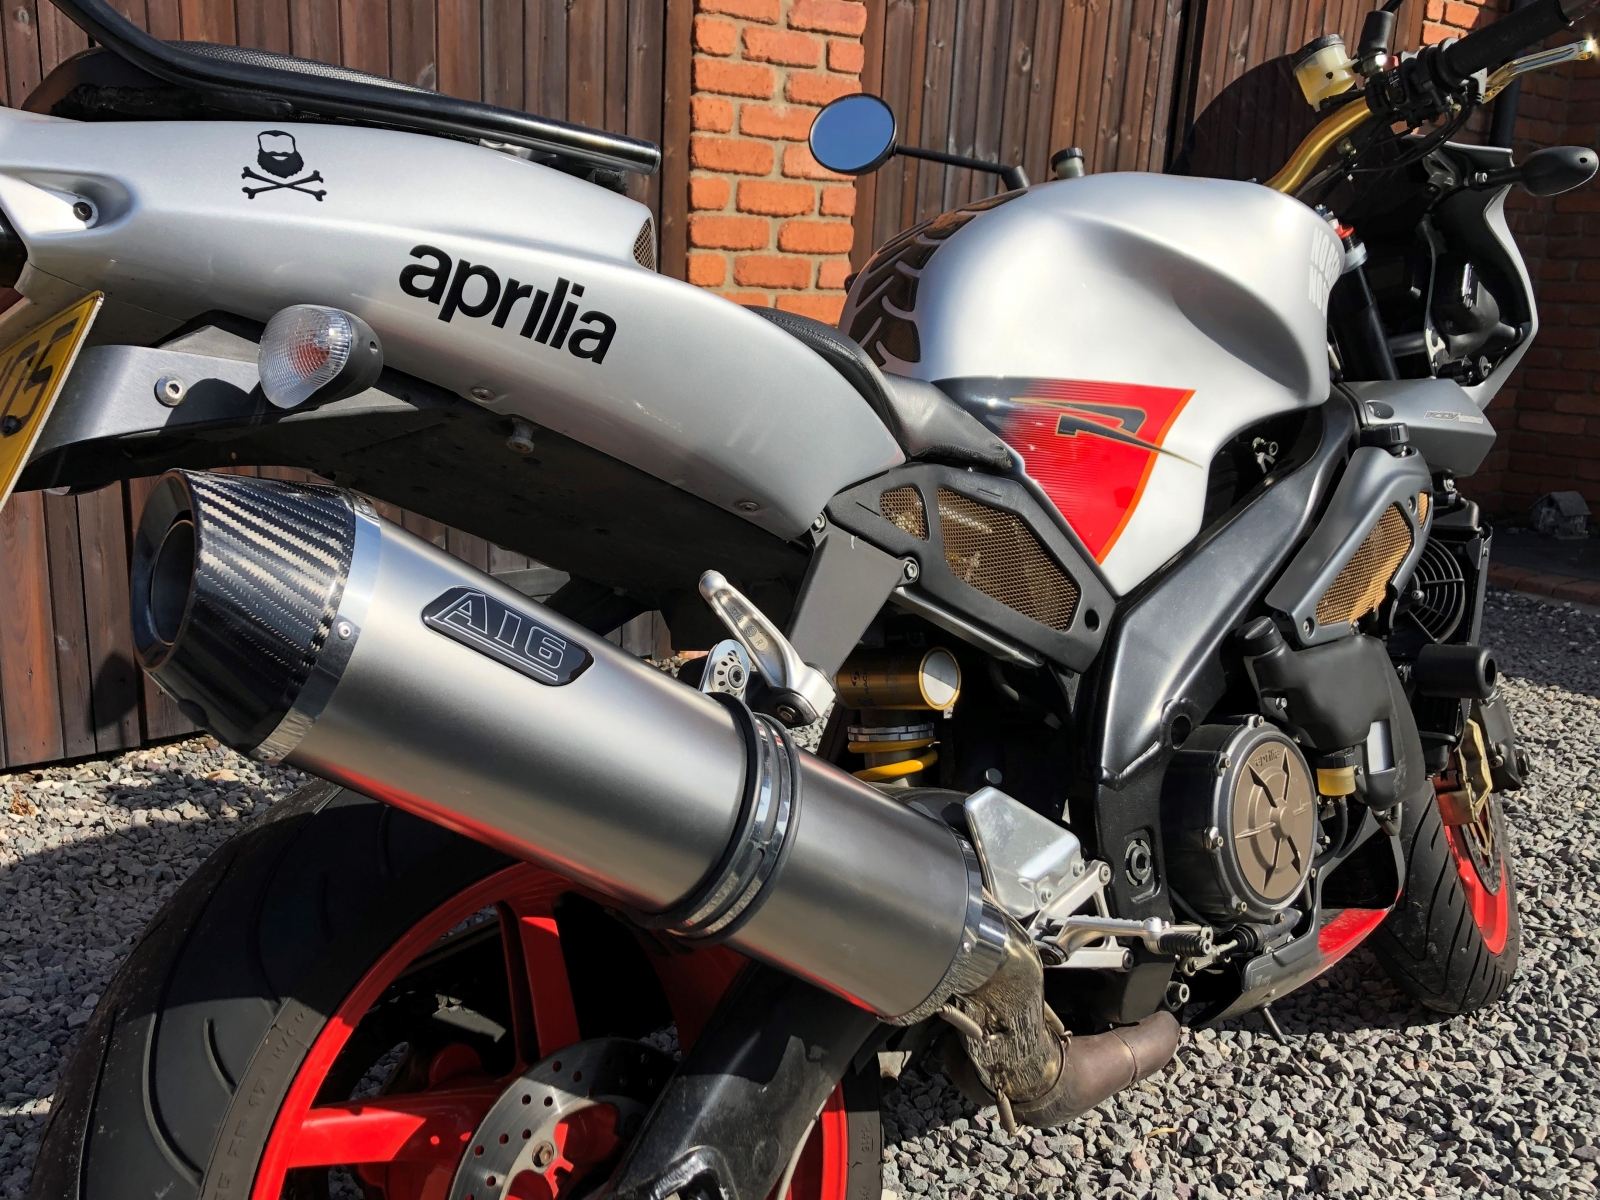 """Aprilia Tuono 1998-2004 <p>A16 Road Legal or Race Stainless Exhaust with Carbon Outlet</p><br/><br/><a href=""""https://a16roadnracesupplies.co.uk/product/a16-aprilia-exhausts/"""">Buy now!</a>"""